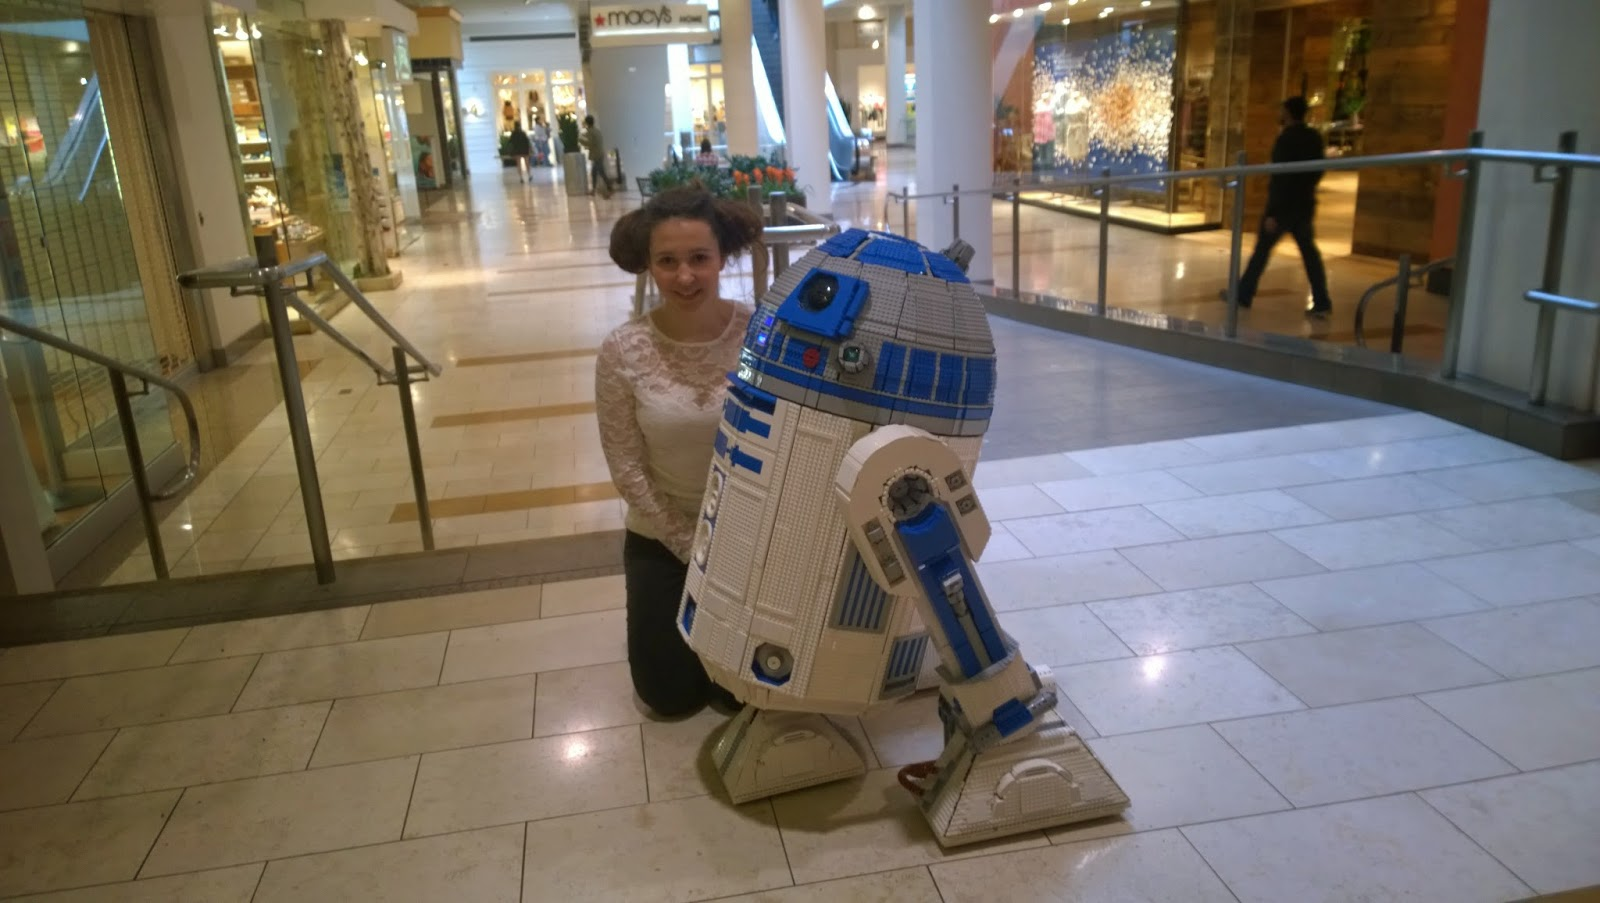 L3-G0 with a fan on Star Wars Day